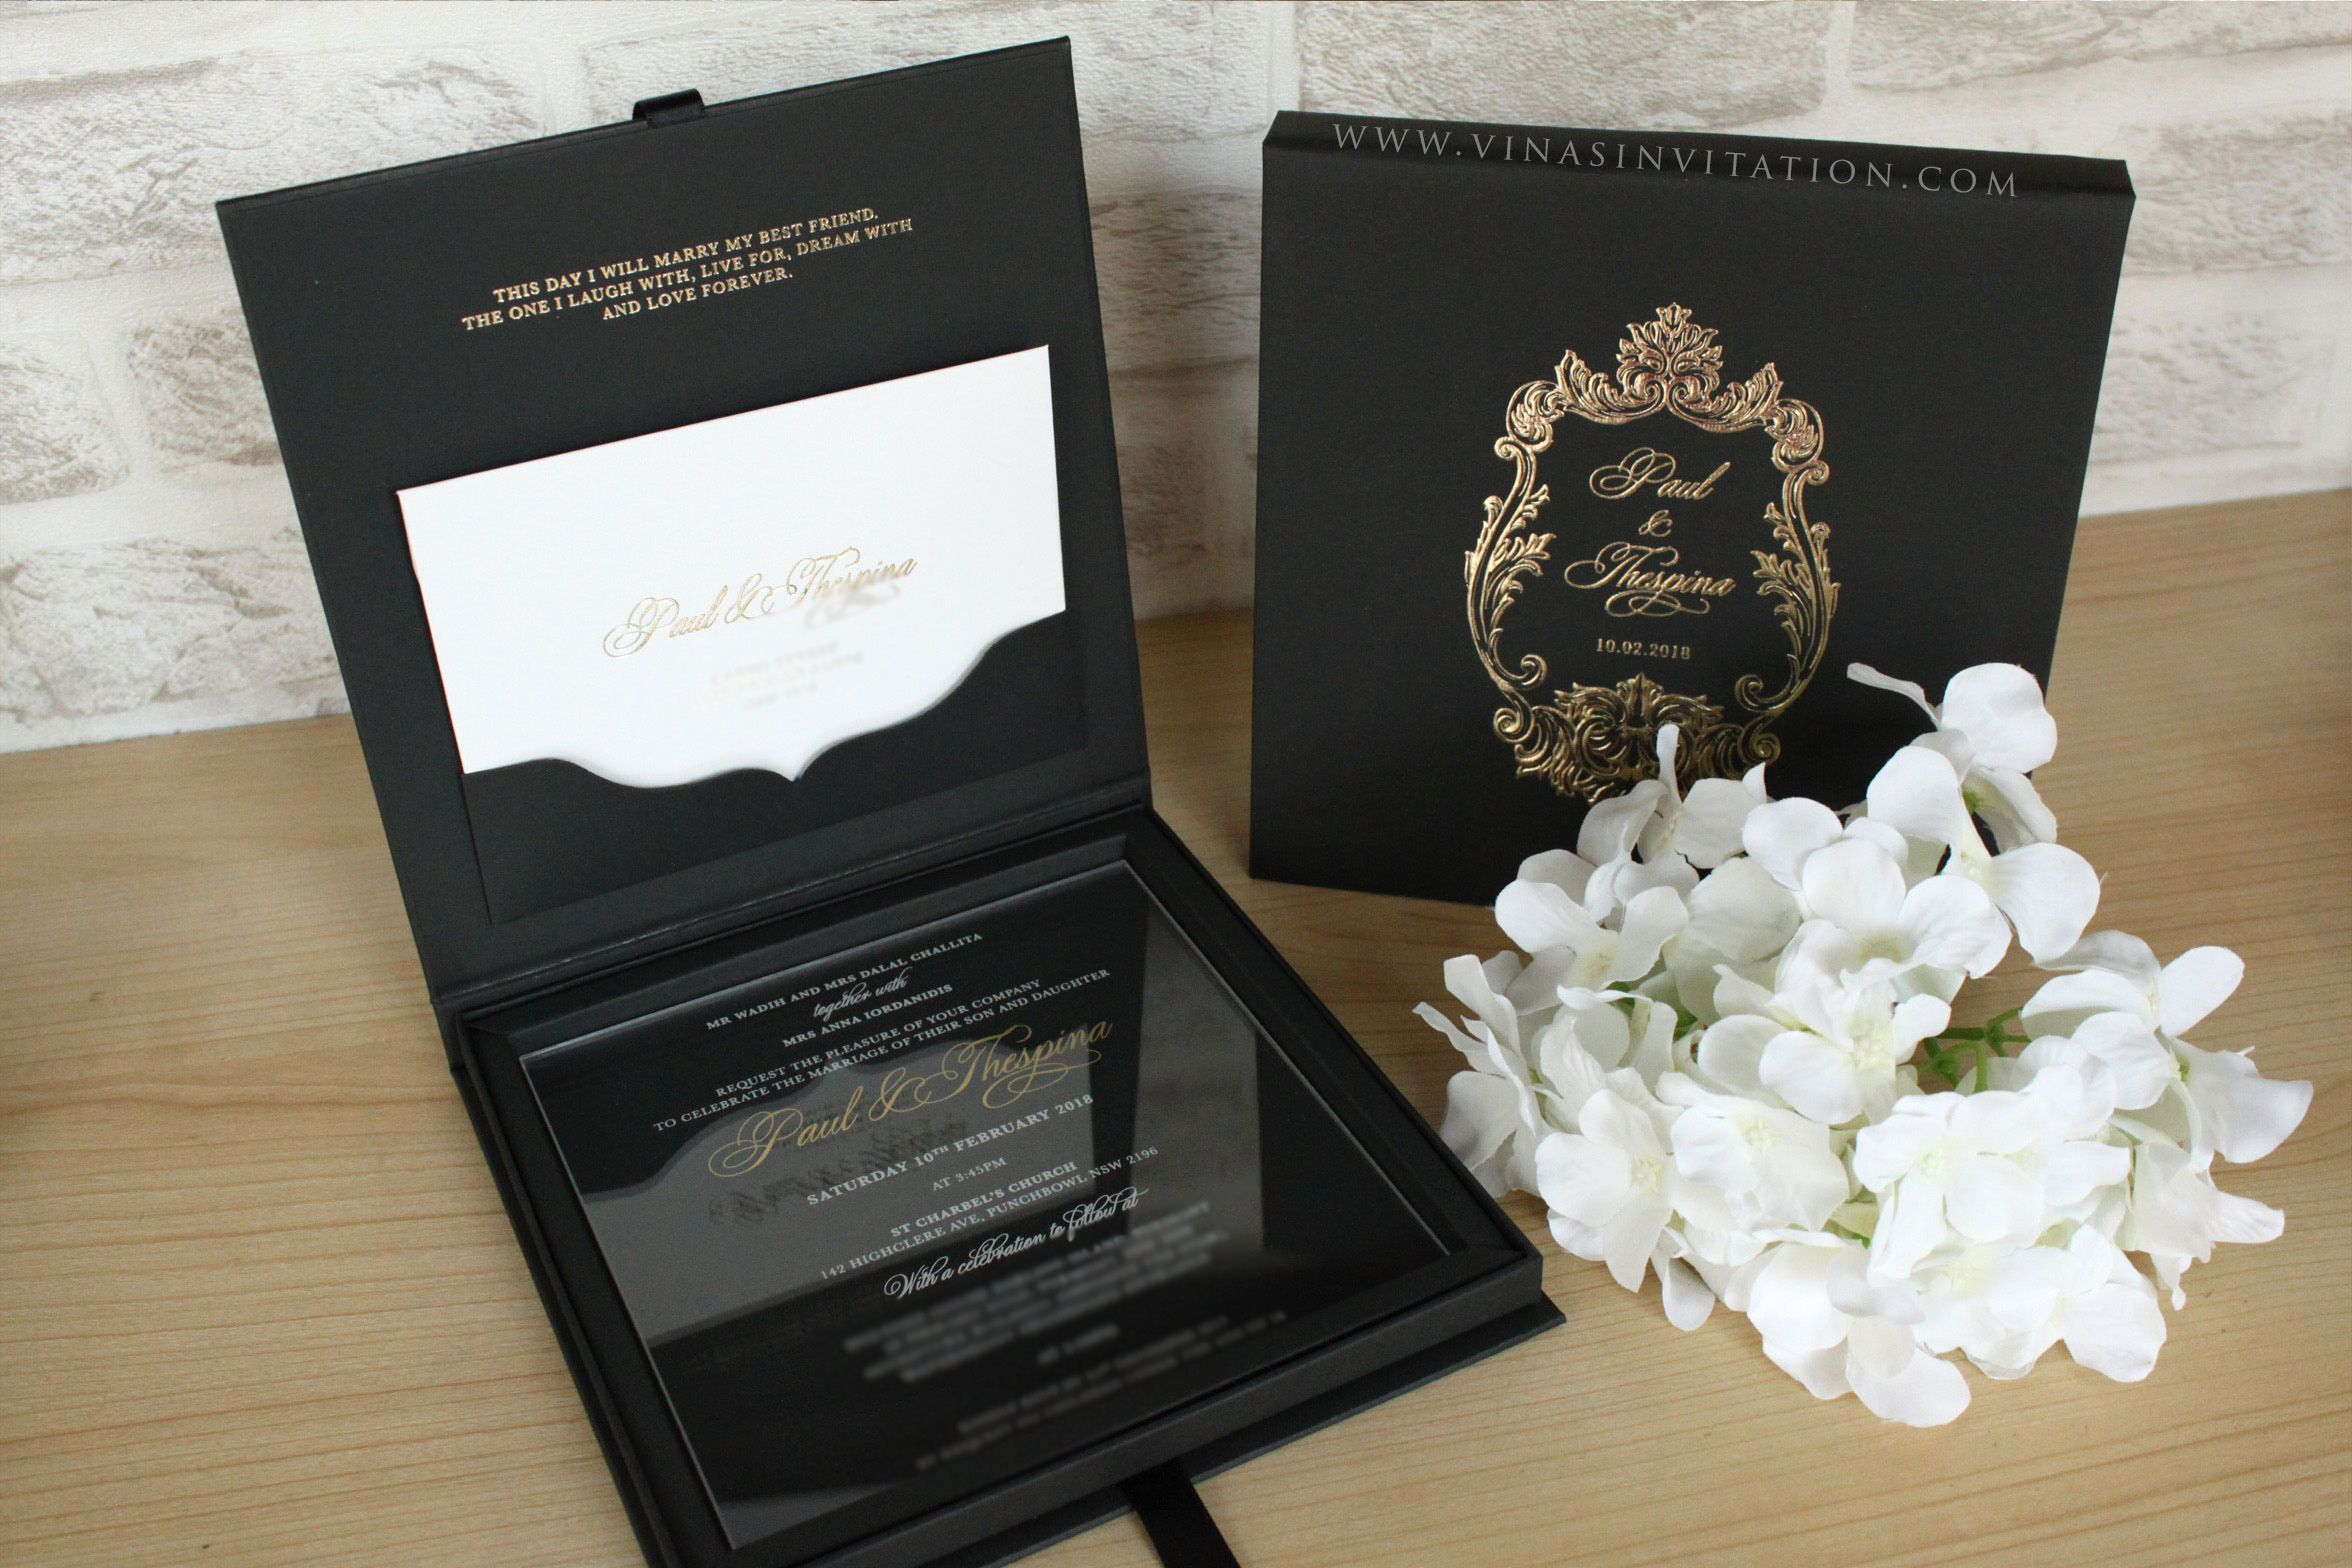 Vinas Invitation Sydney Wedding Invitation Indonesia Wedding